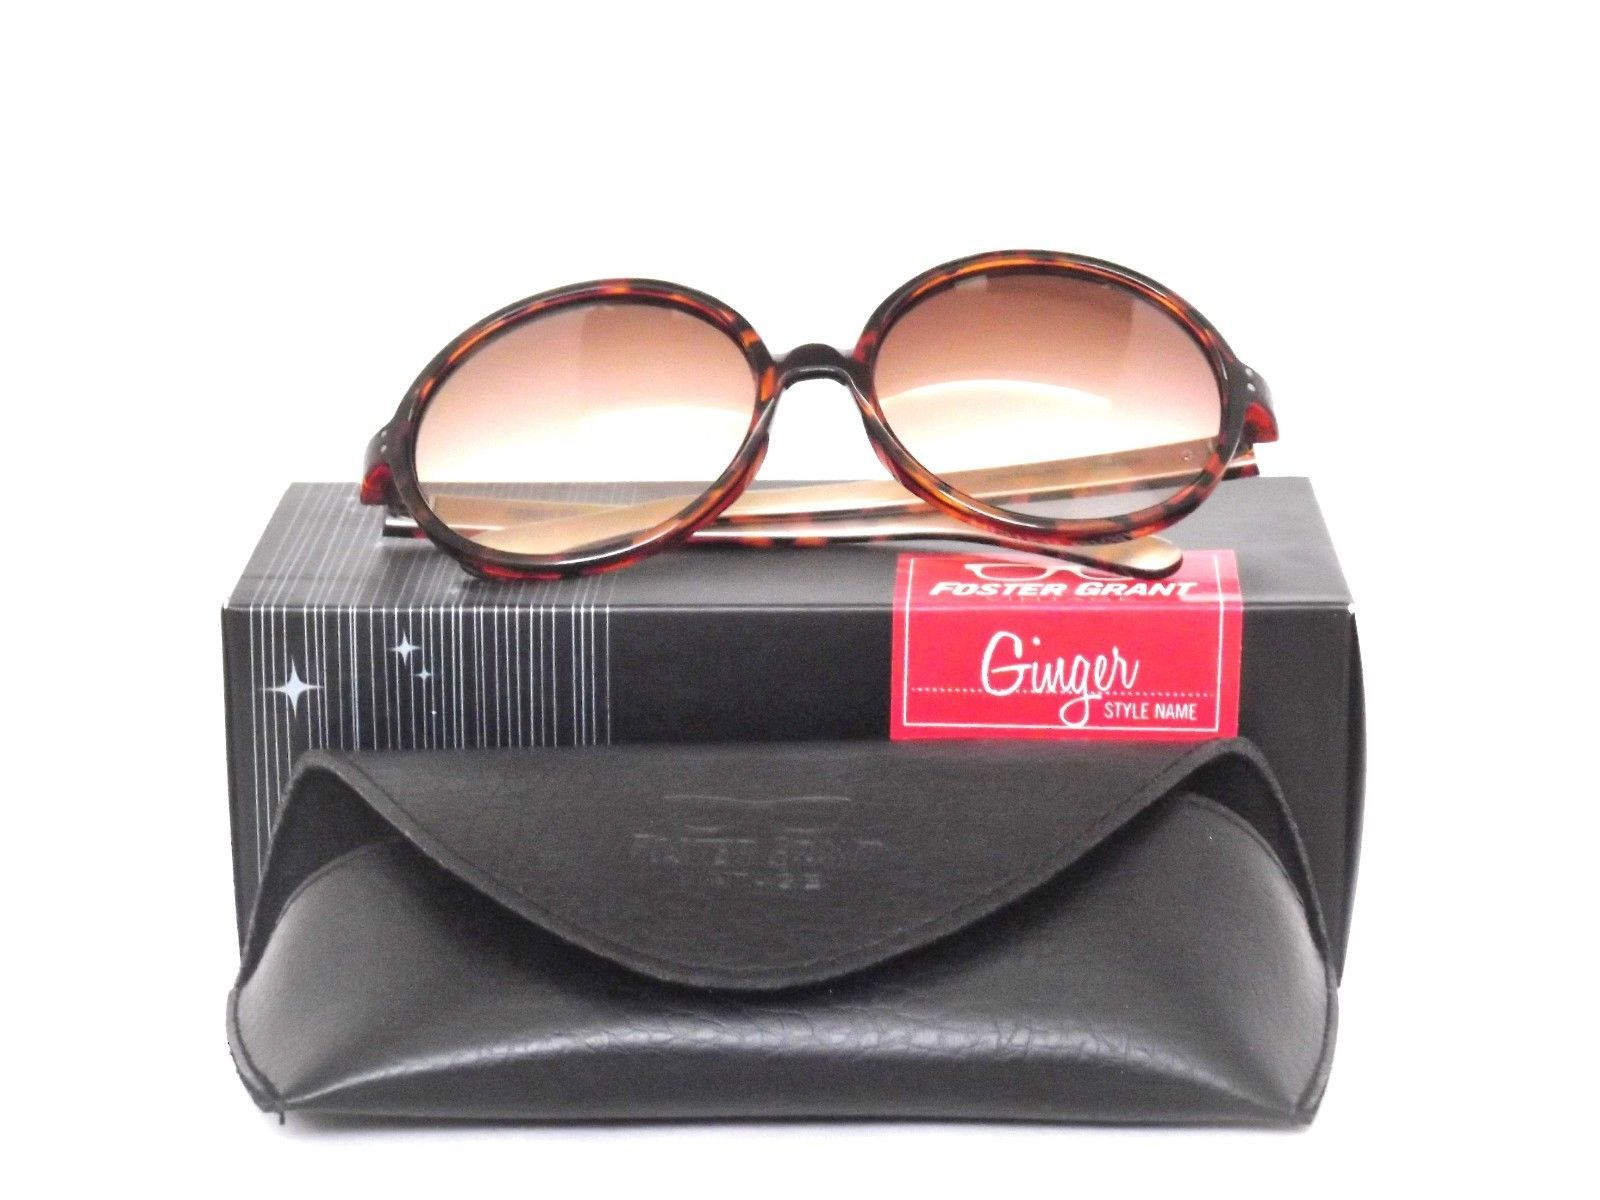 New Vintage Series Retro Look Ladies FOSTER GRANT SUNGLASSES Case Box Tortoise